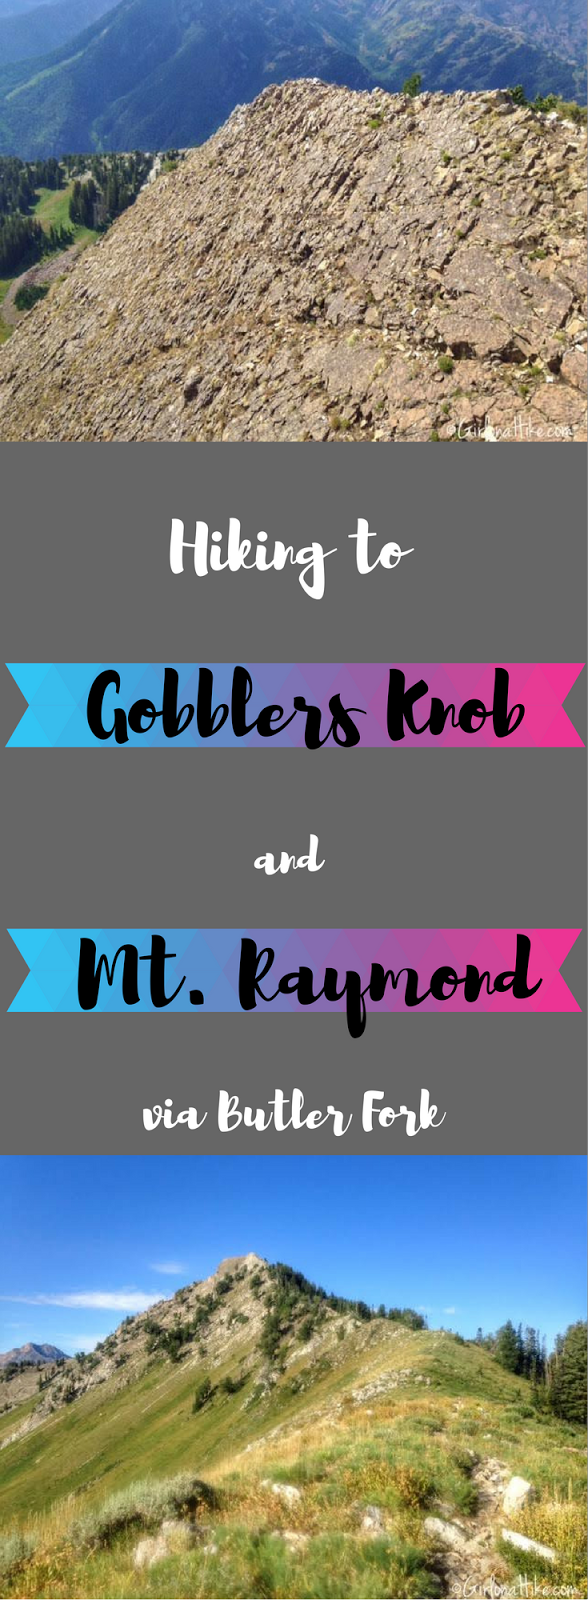 Hiking to Gobblers Knob and Mt. Raymond